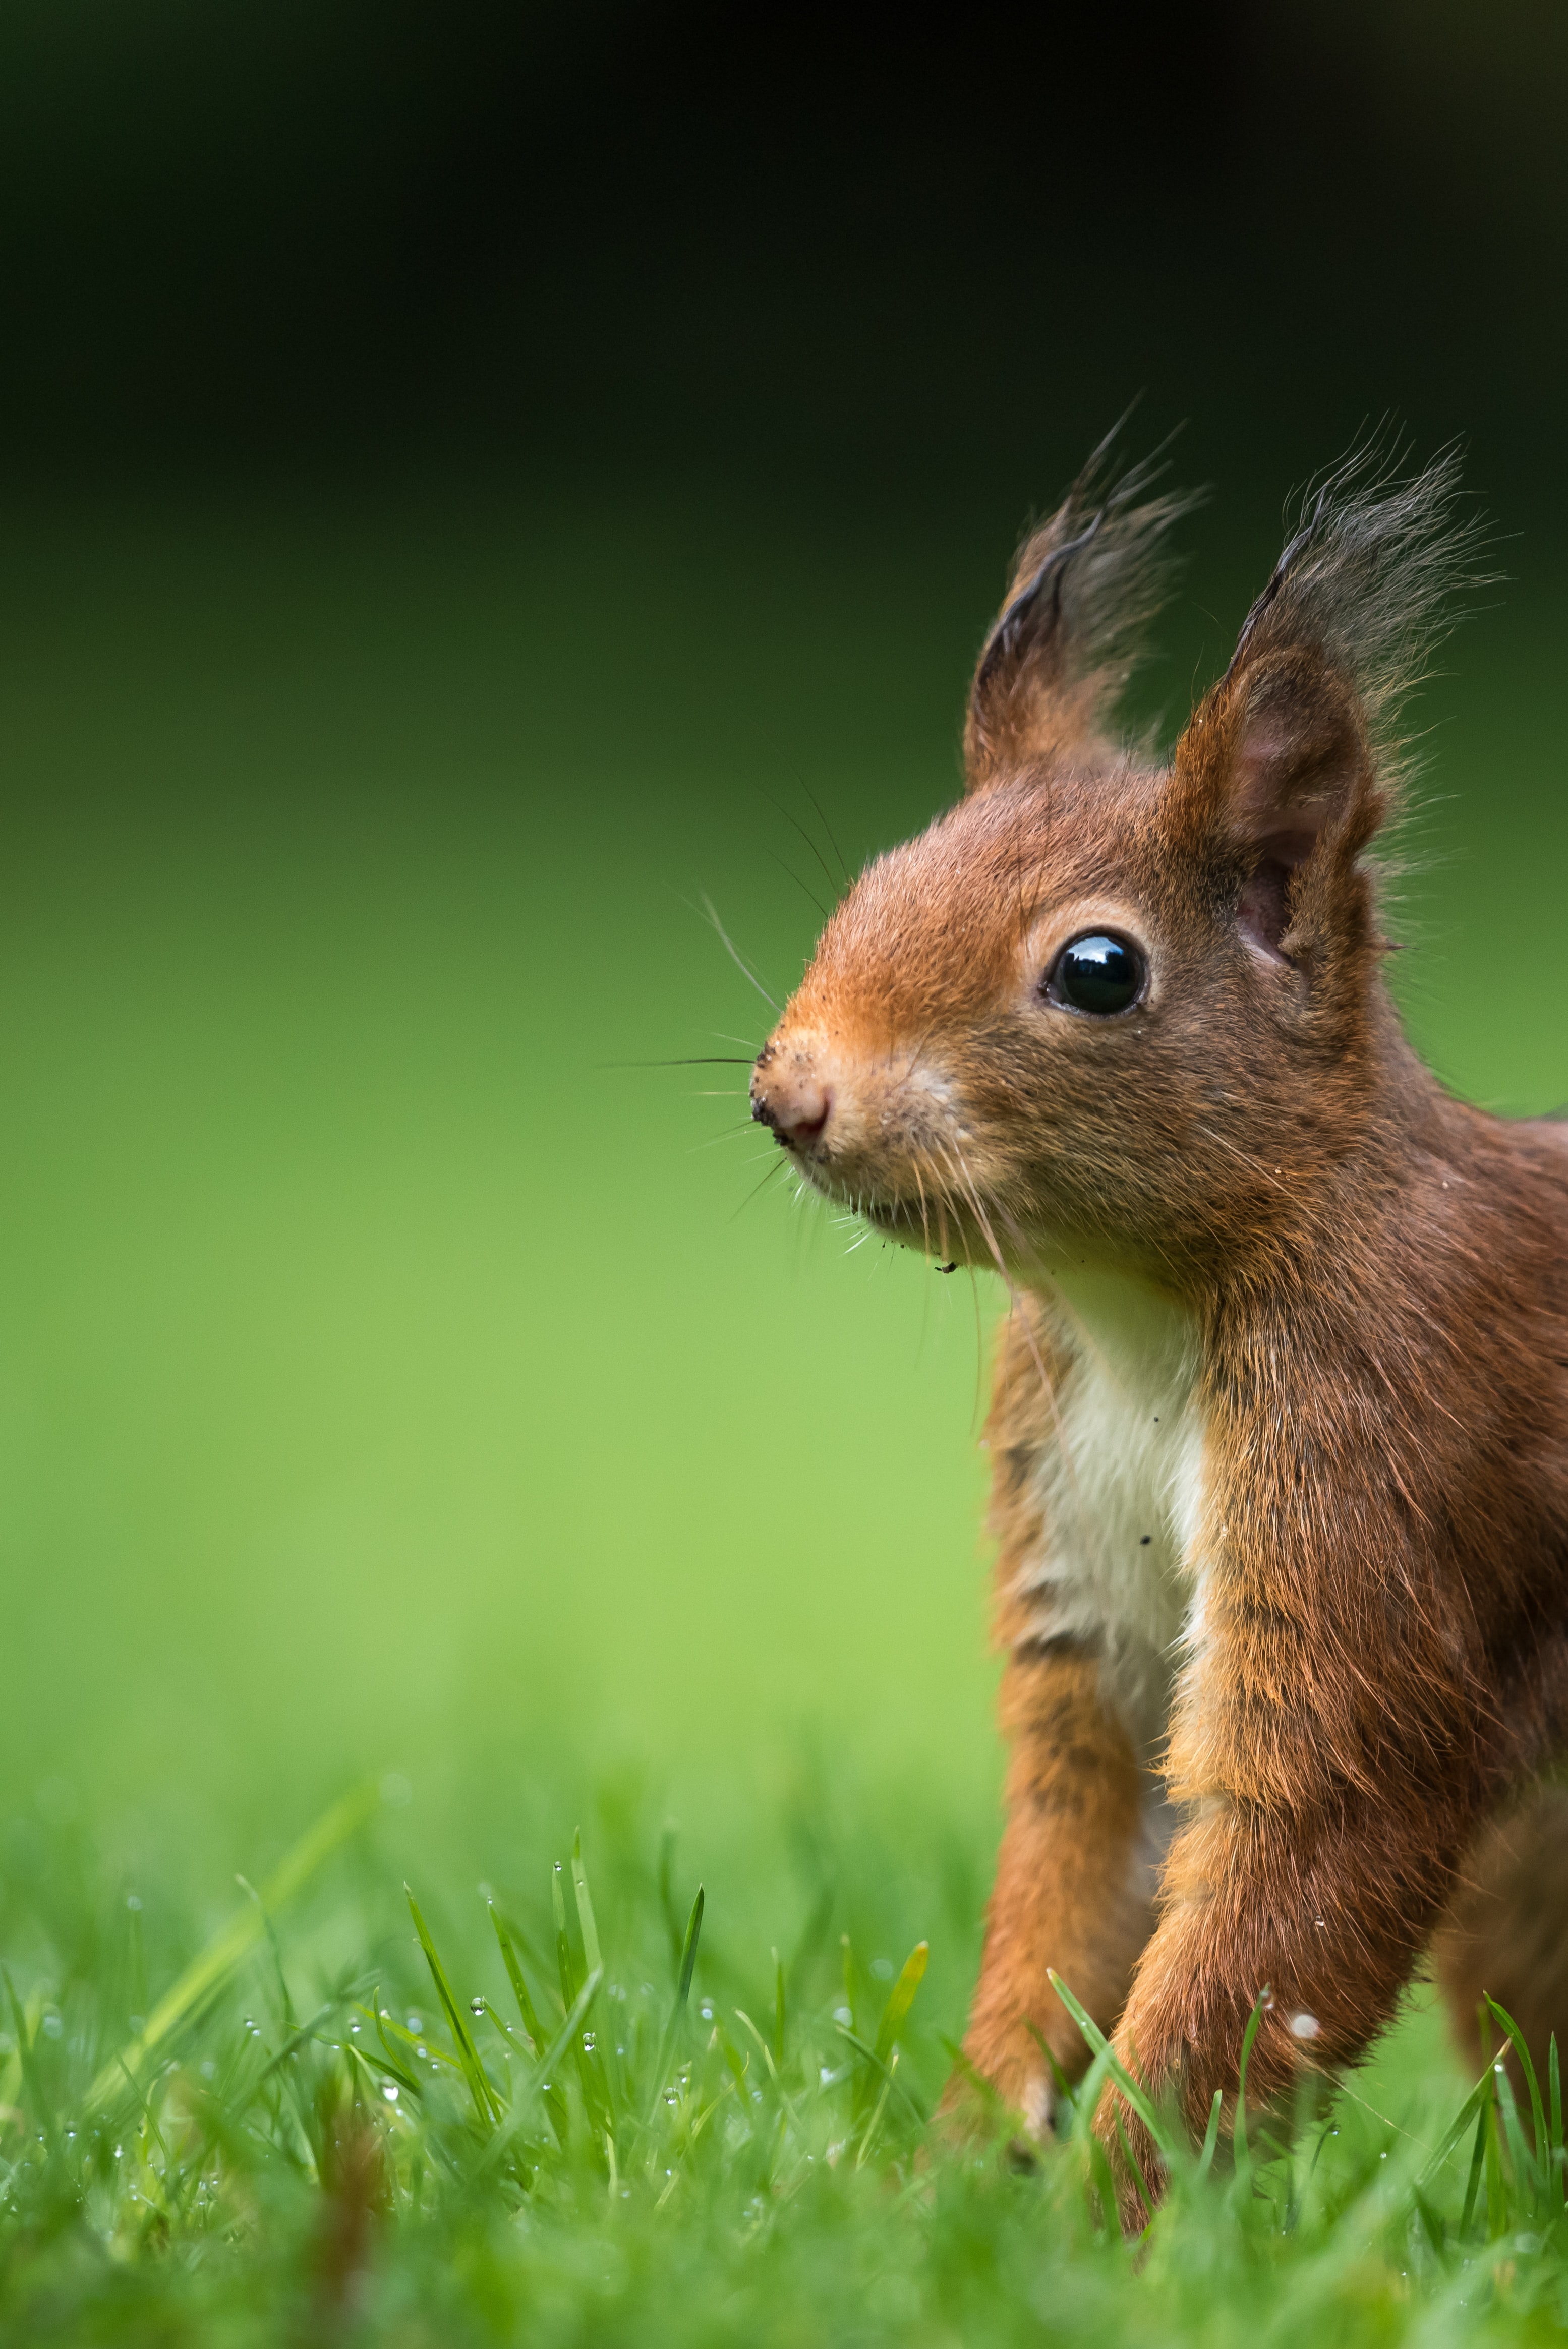 tilt-shift lens photography of brown squirrel on green grass during daytime